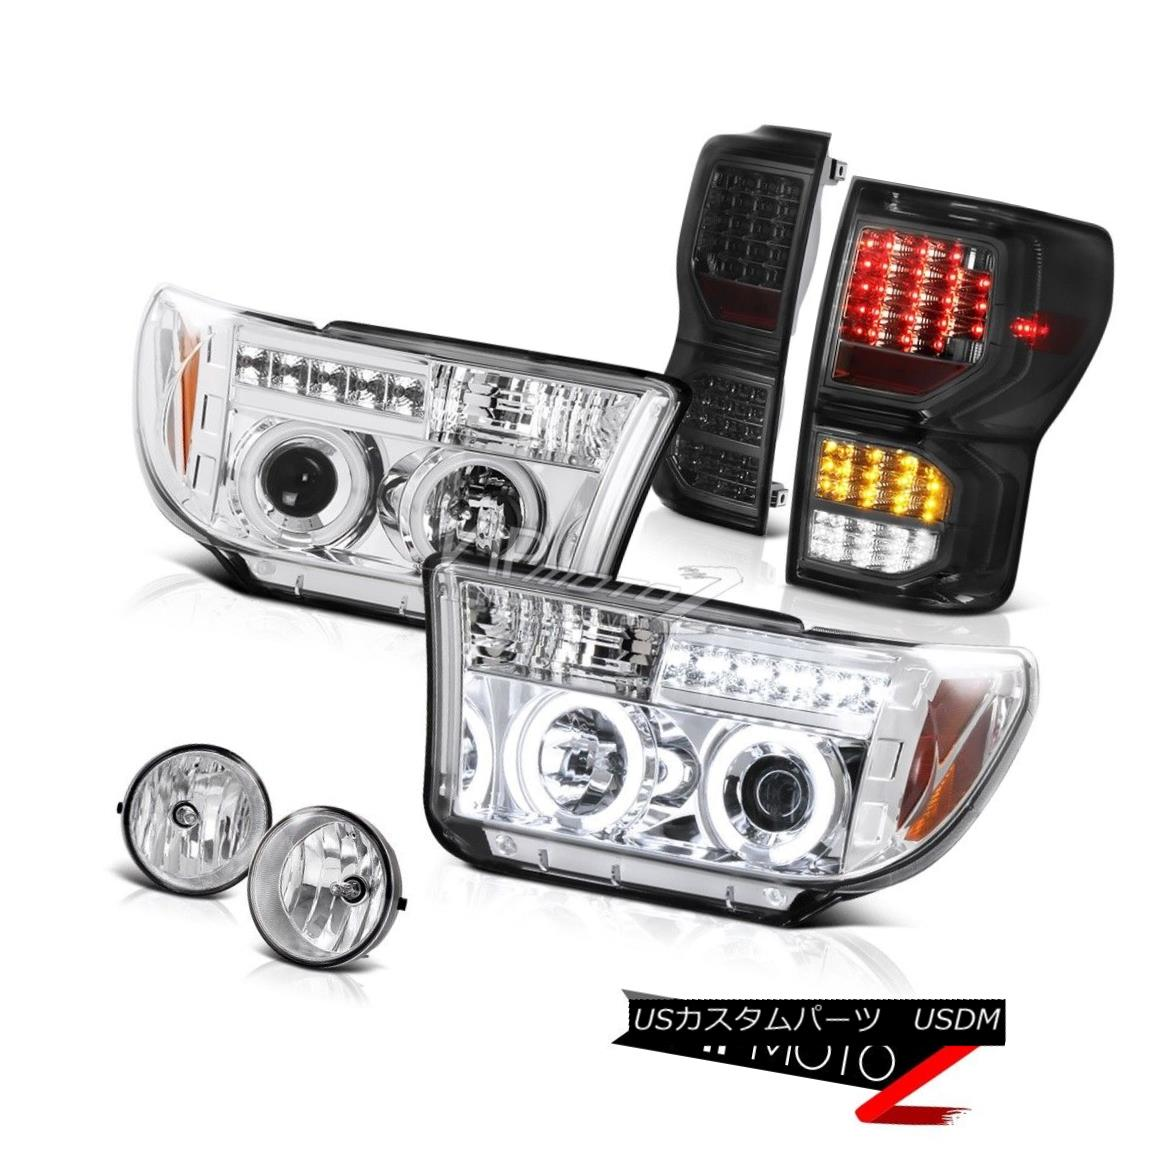 テールライト 07-13 Toyota Tundra Limited Smokey Tail Lights Headlights Fog SMD